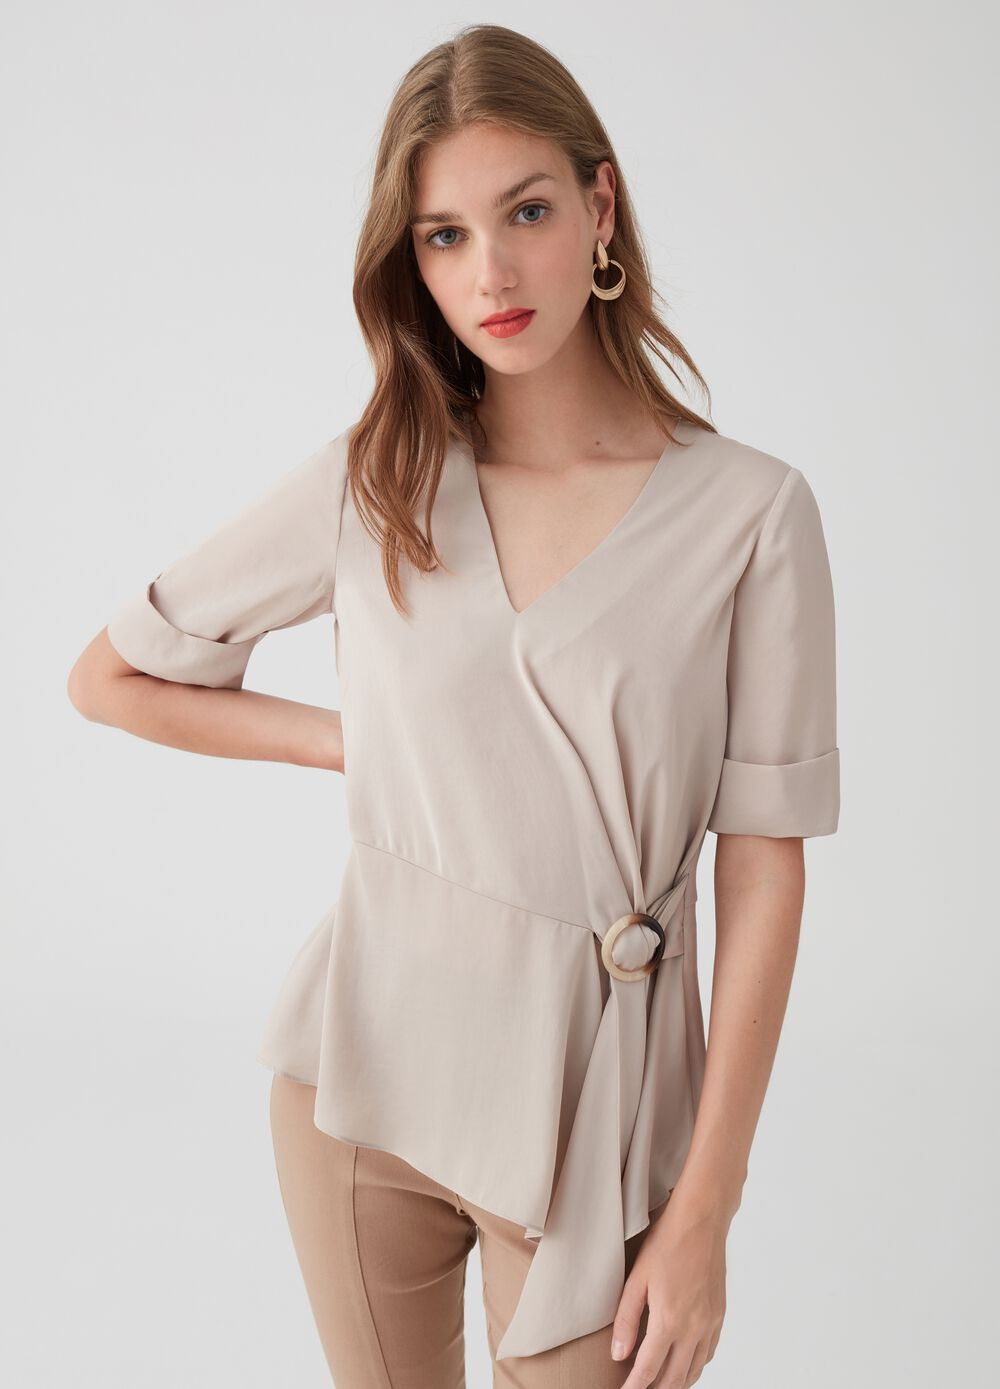 Short-sleeved blouse with tie on front